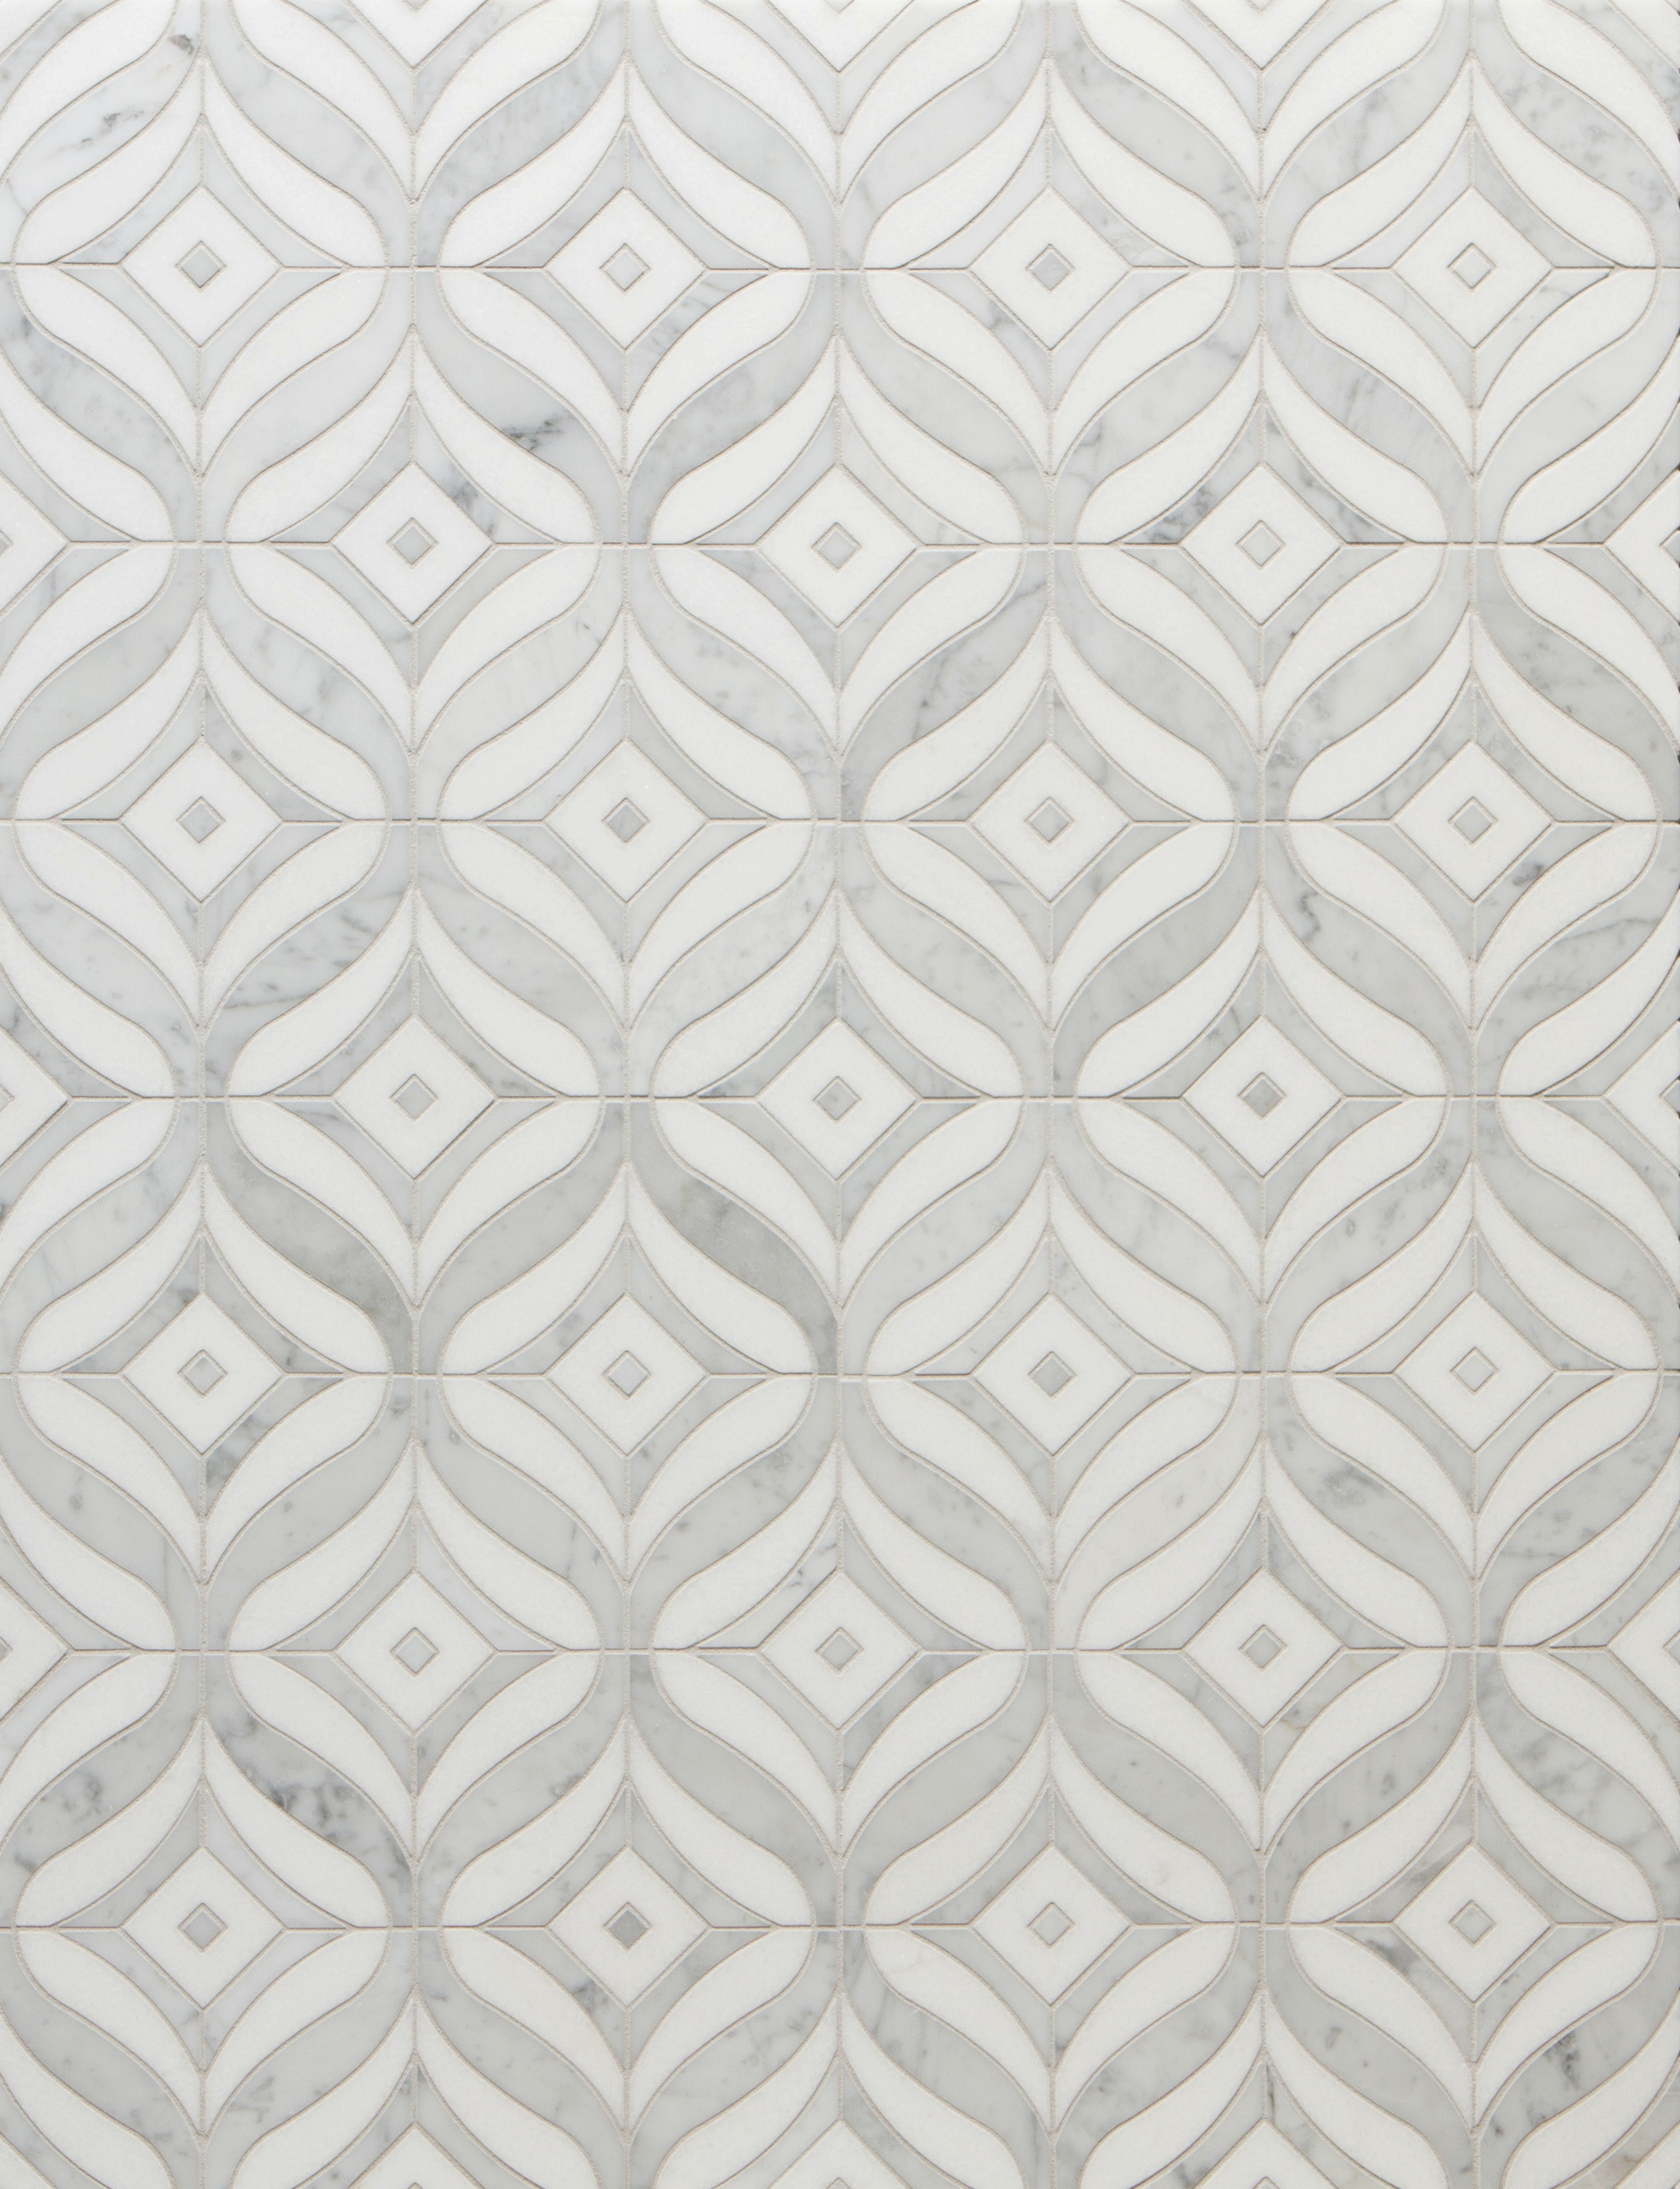 decorative stone tiles in white by Walker Zanger for wall decor ideas